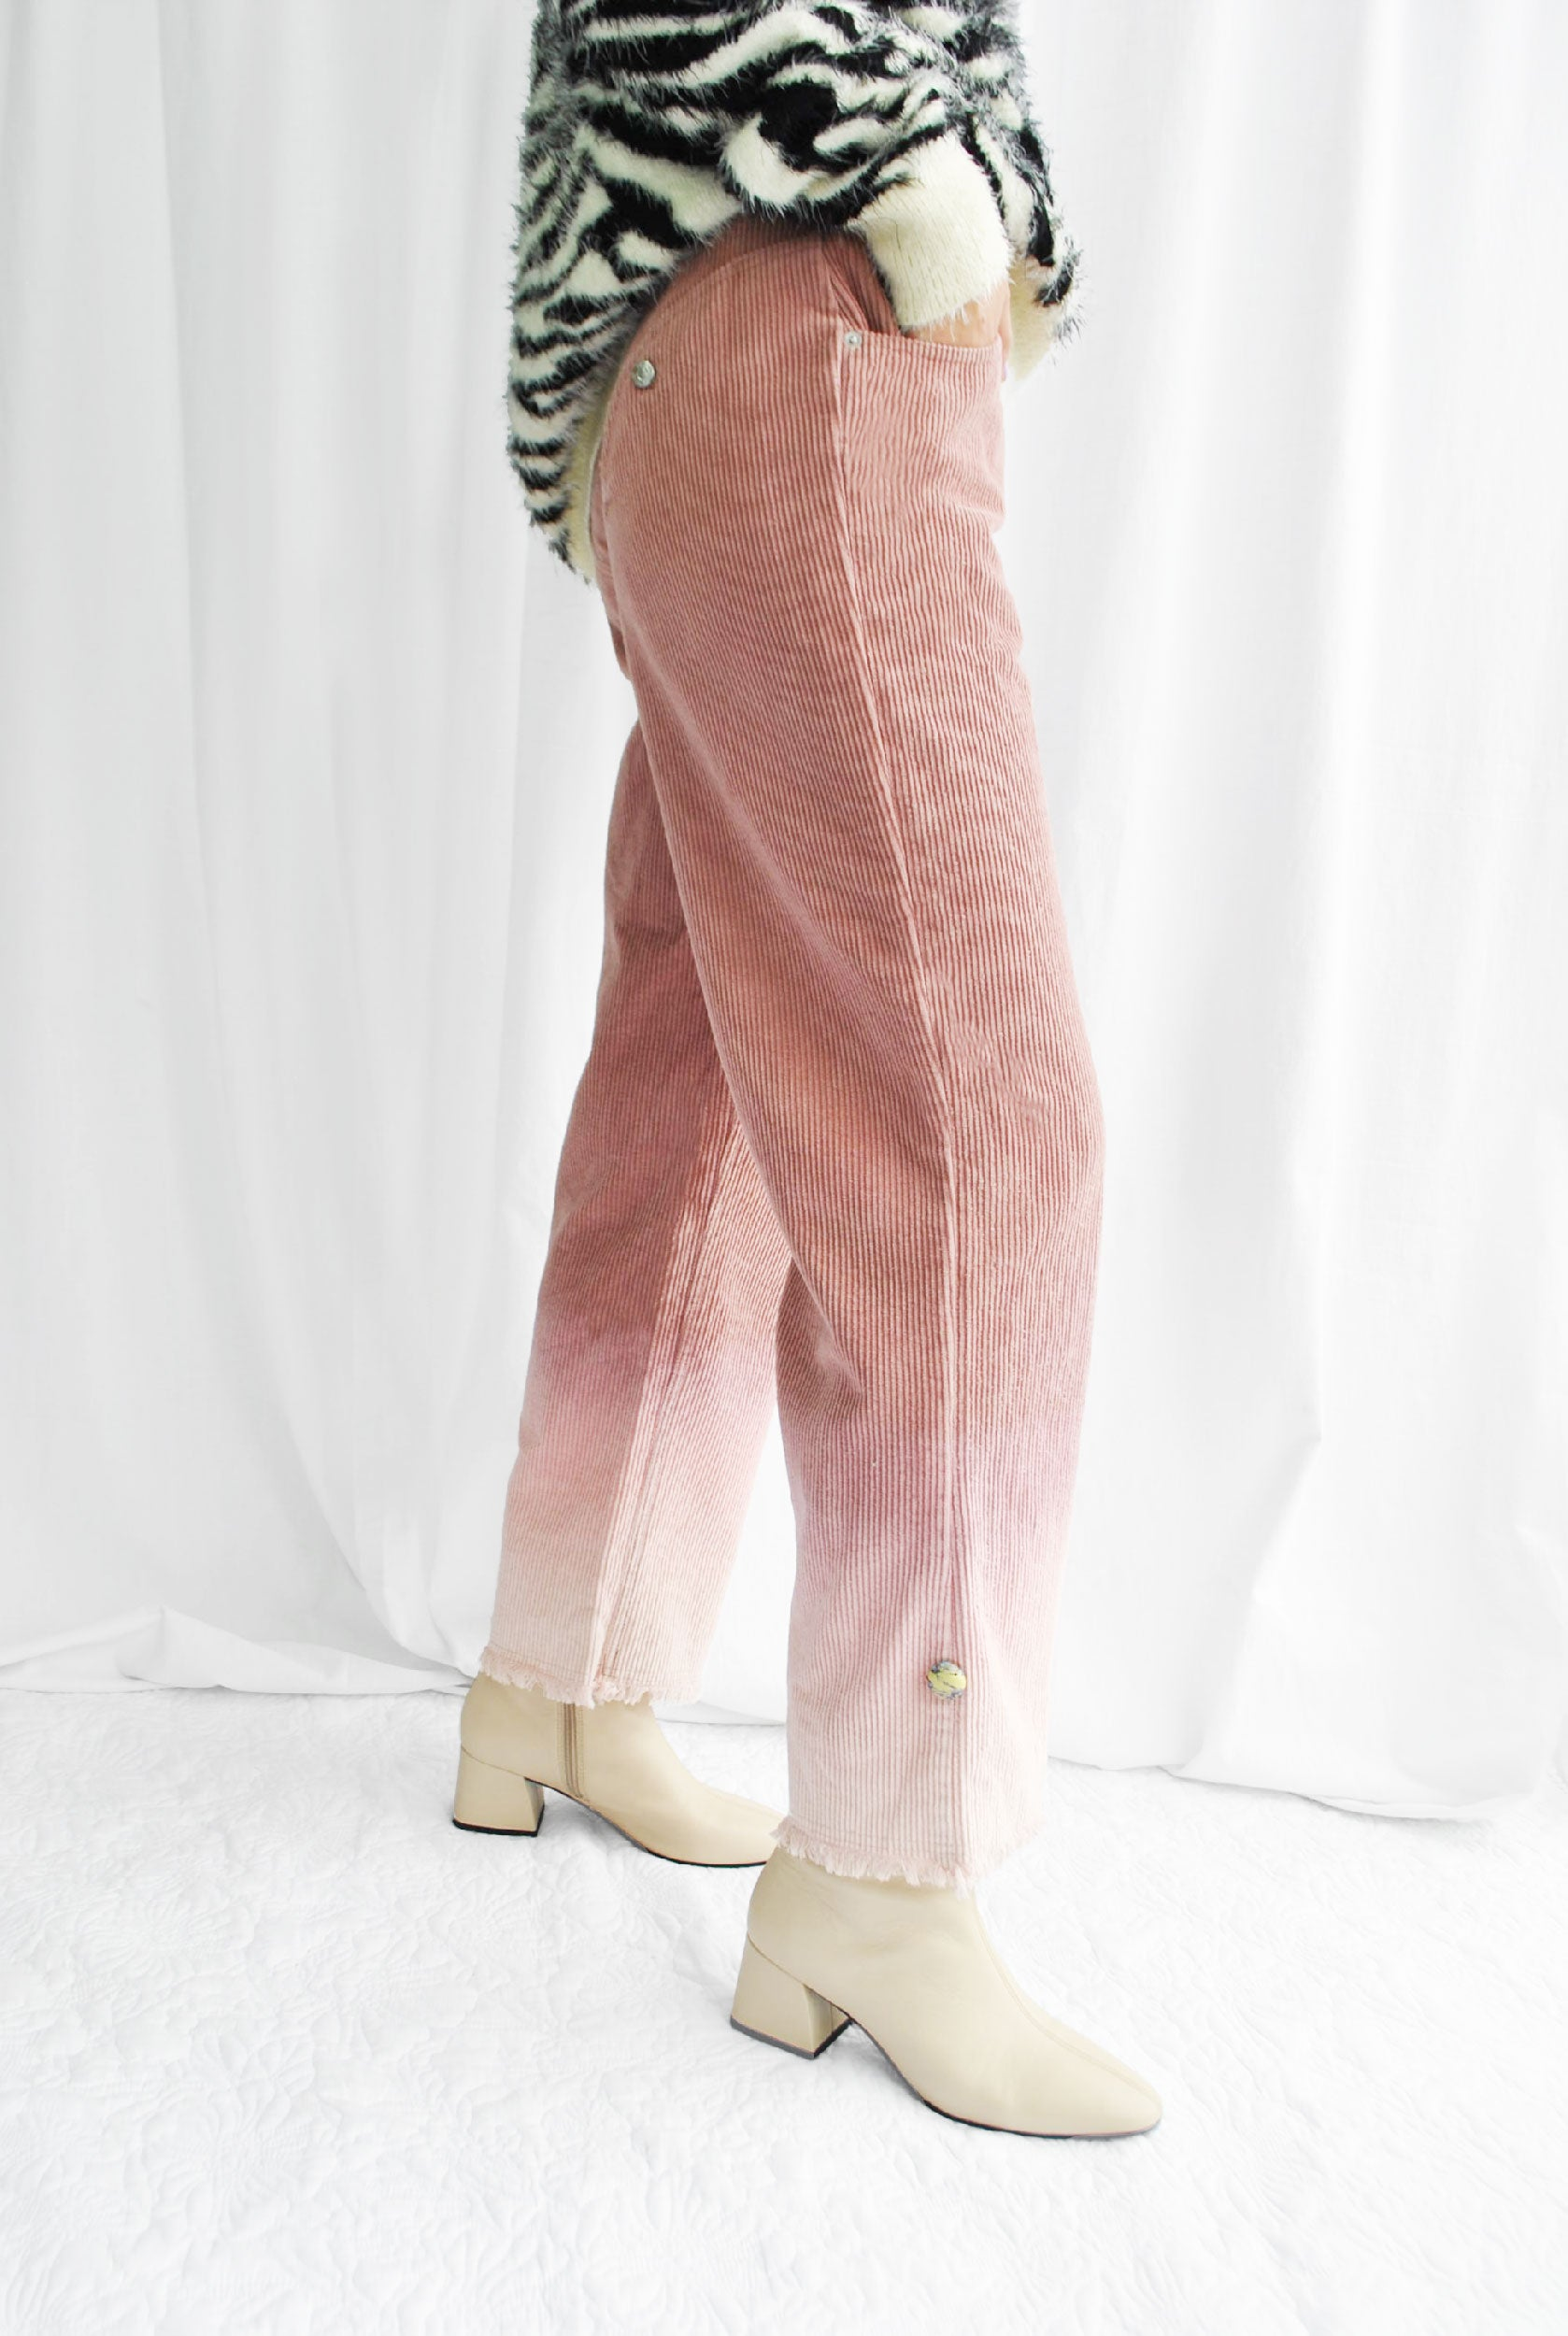 House of Sunny The Fades Cord Trousers